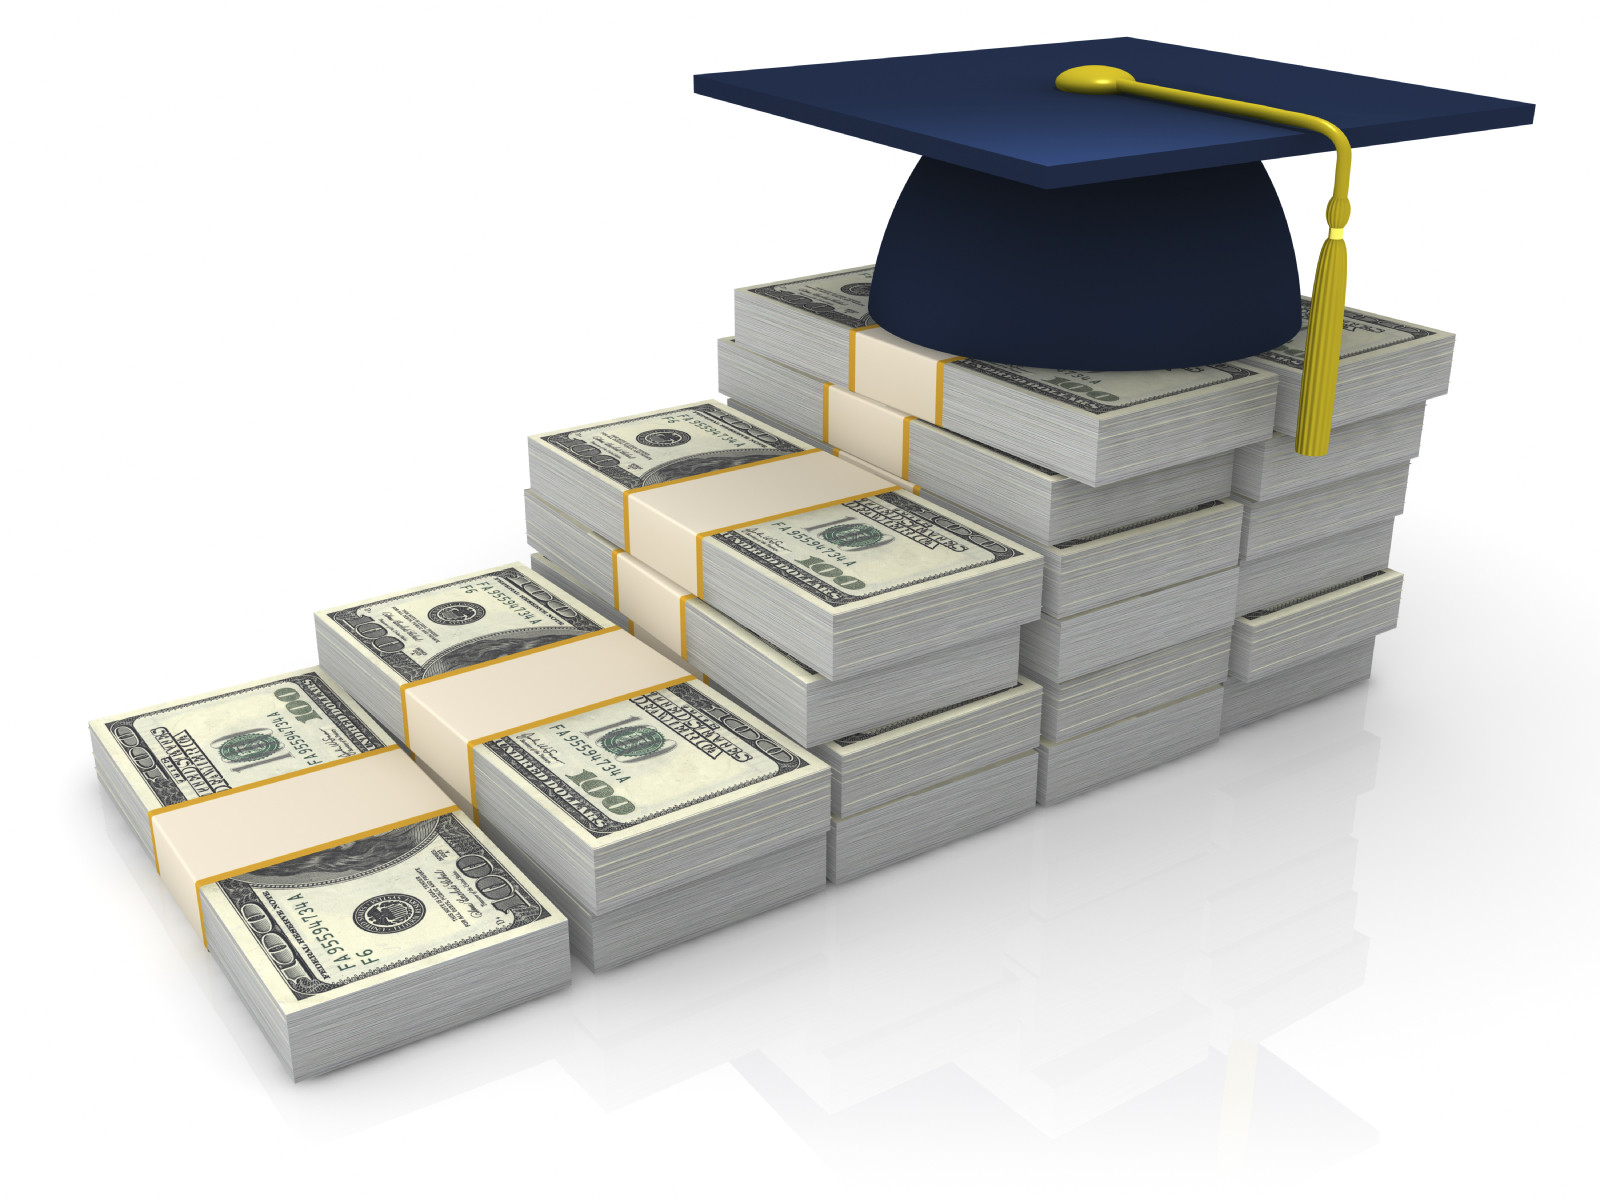 Scholarship opportunities abound students need only apply the 1600x1200